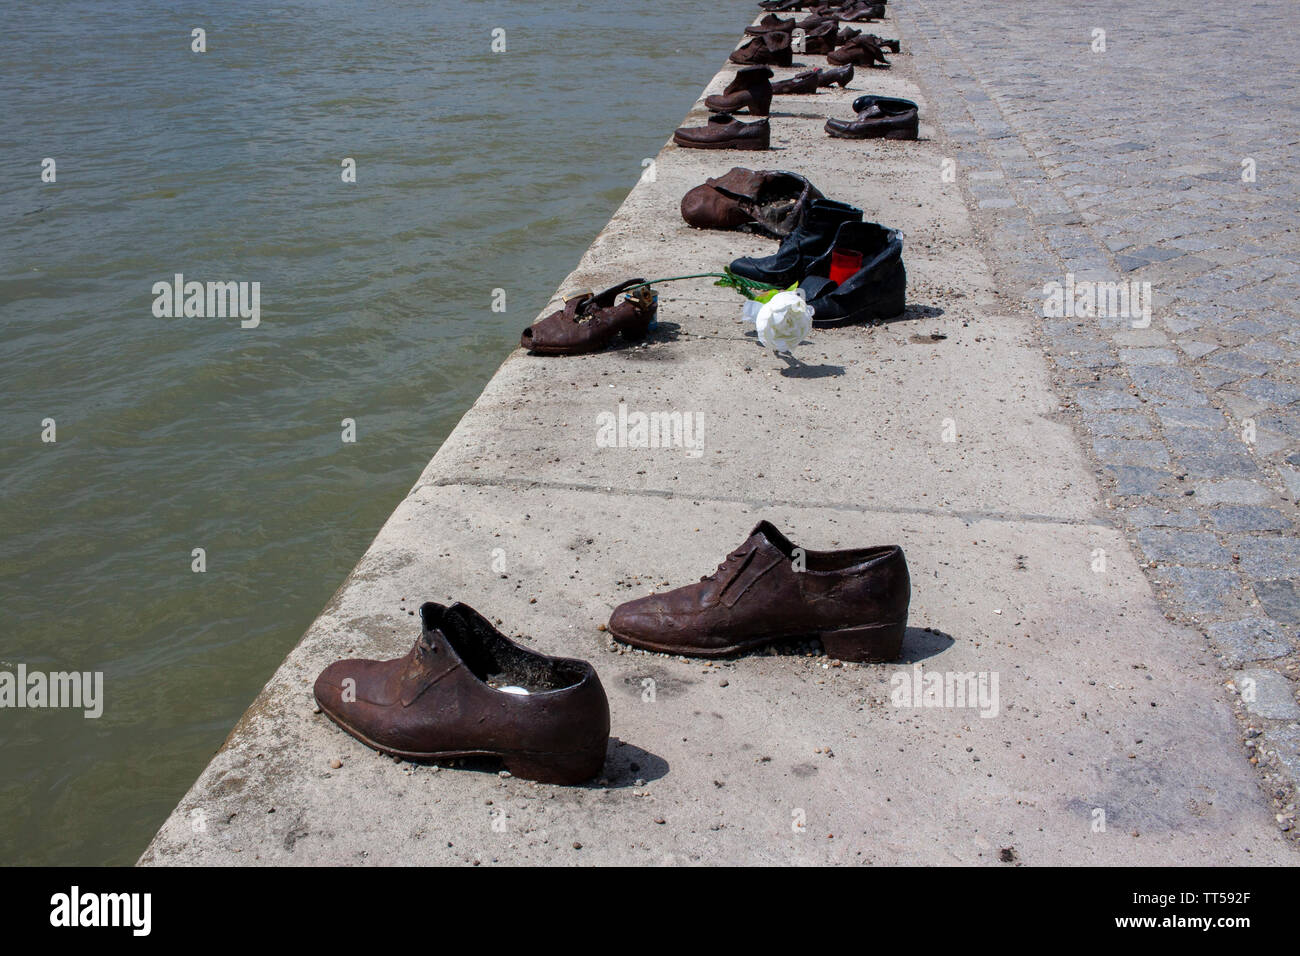 A view of the Danube River from the Shoes on the Danube memorial. Lewis Mitchell. - Stock Image